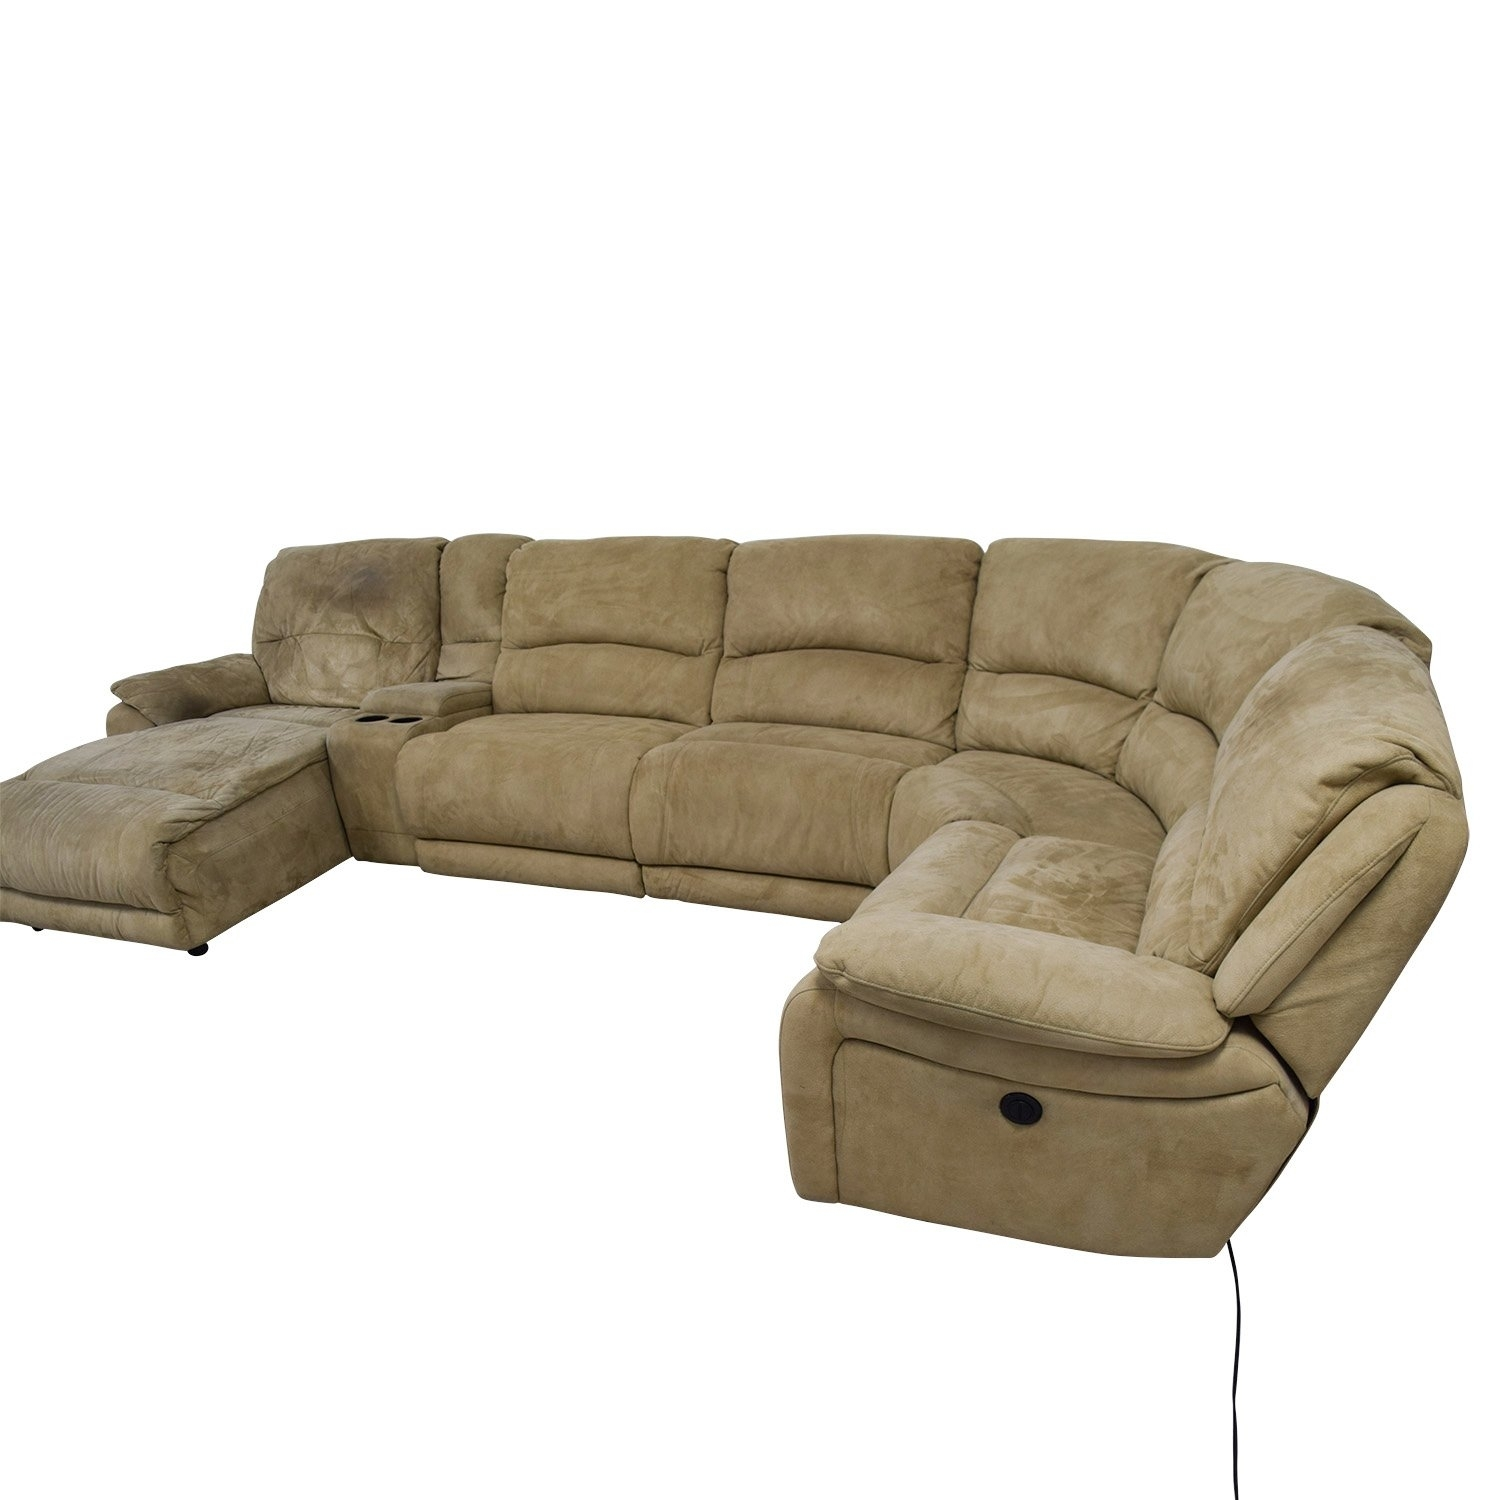 Fabulous 25 Power Reclining Sectional Sofa Favorite regarding Calder Grey 6 Piece Manual Reclining Sectionals (Image 8 of 30)